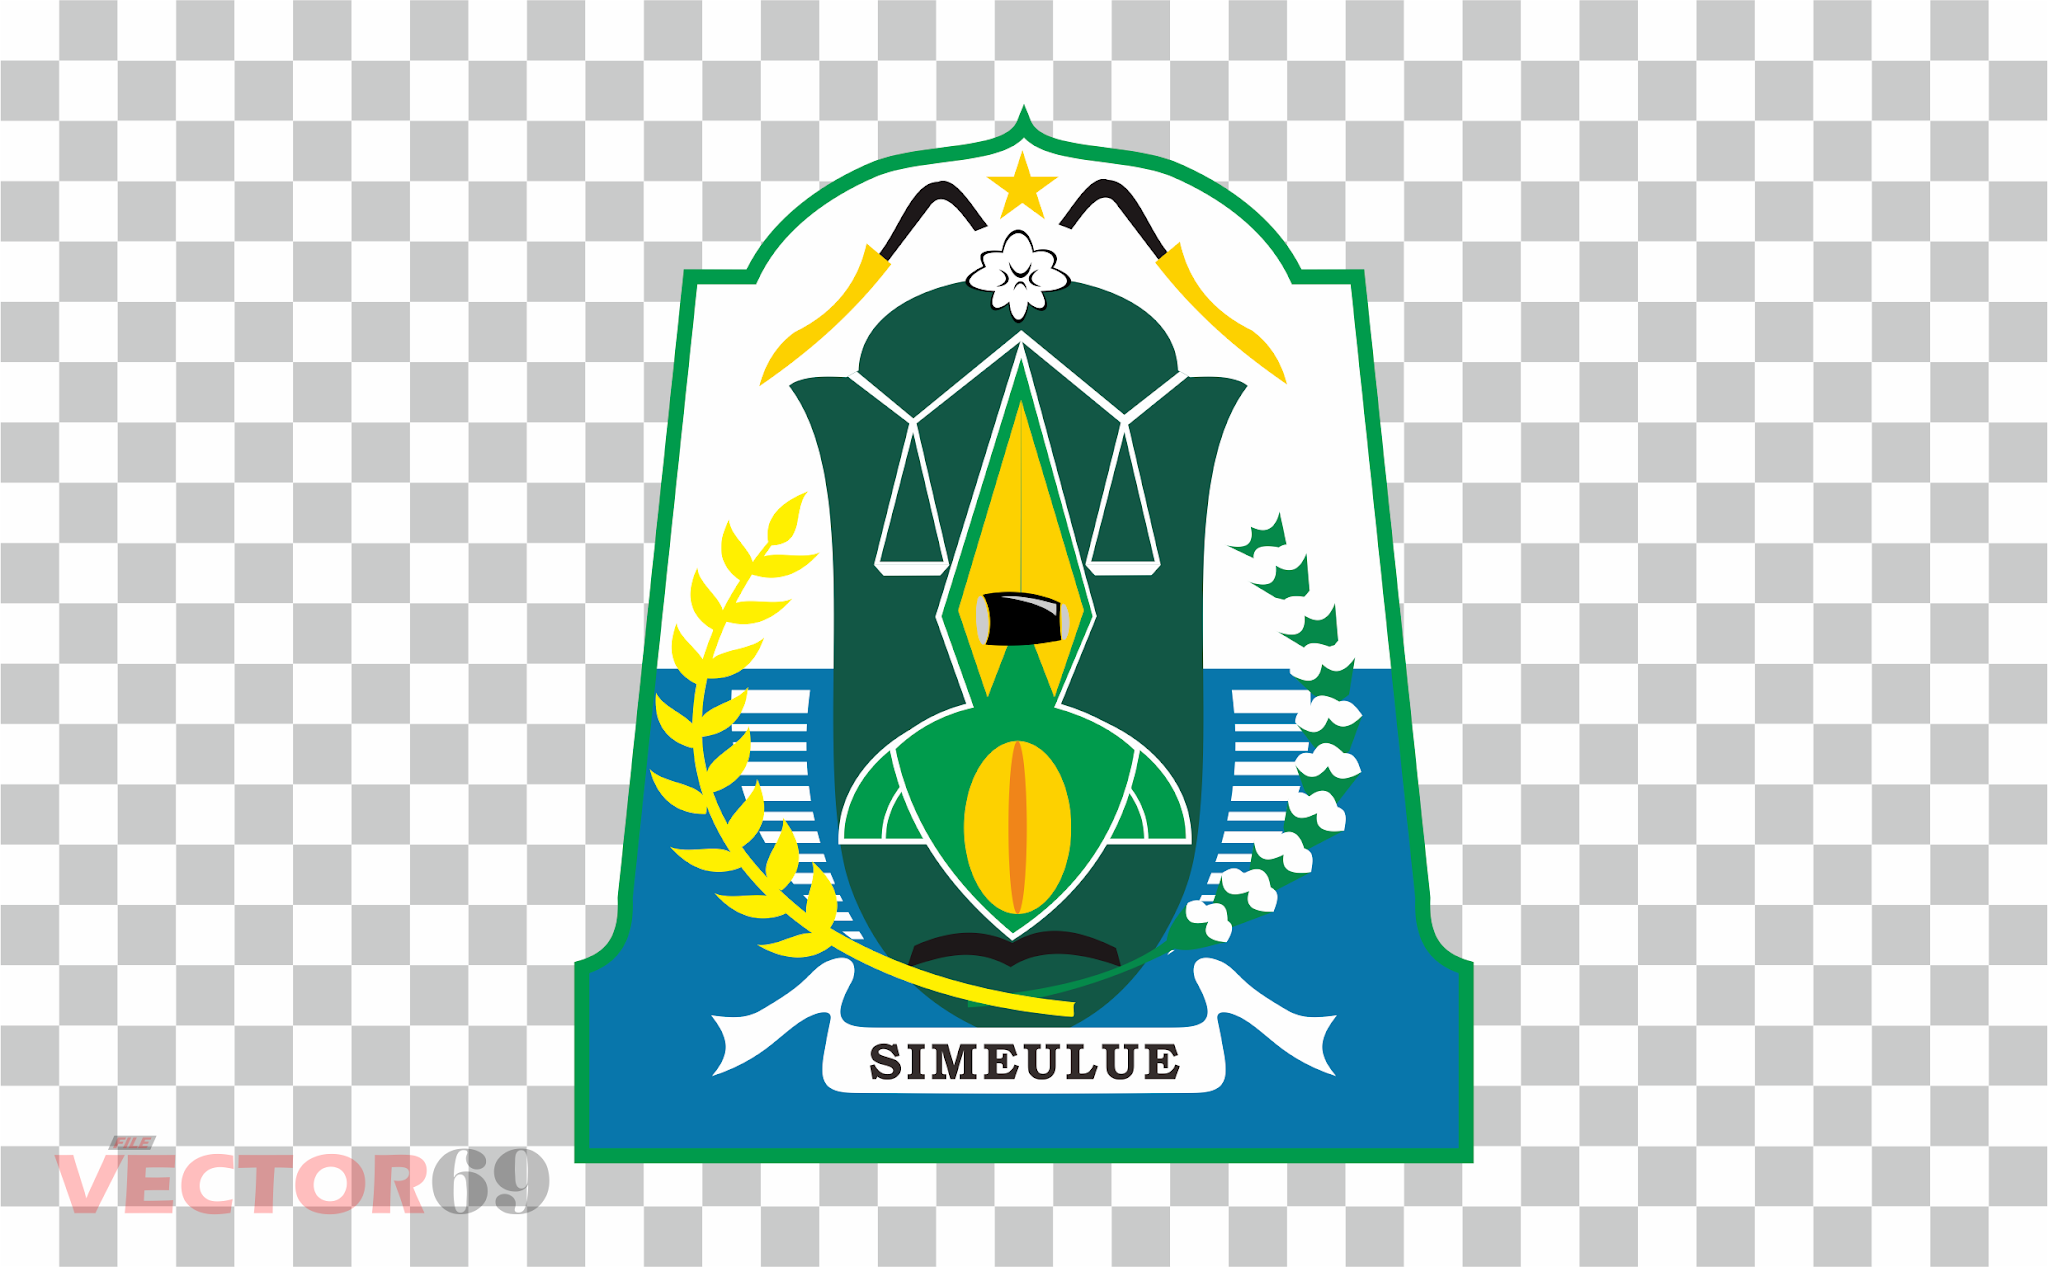 Kabupaten Simeulue Logo - Download Vector File PNG (Portable Network Graphics)